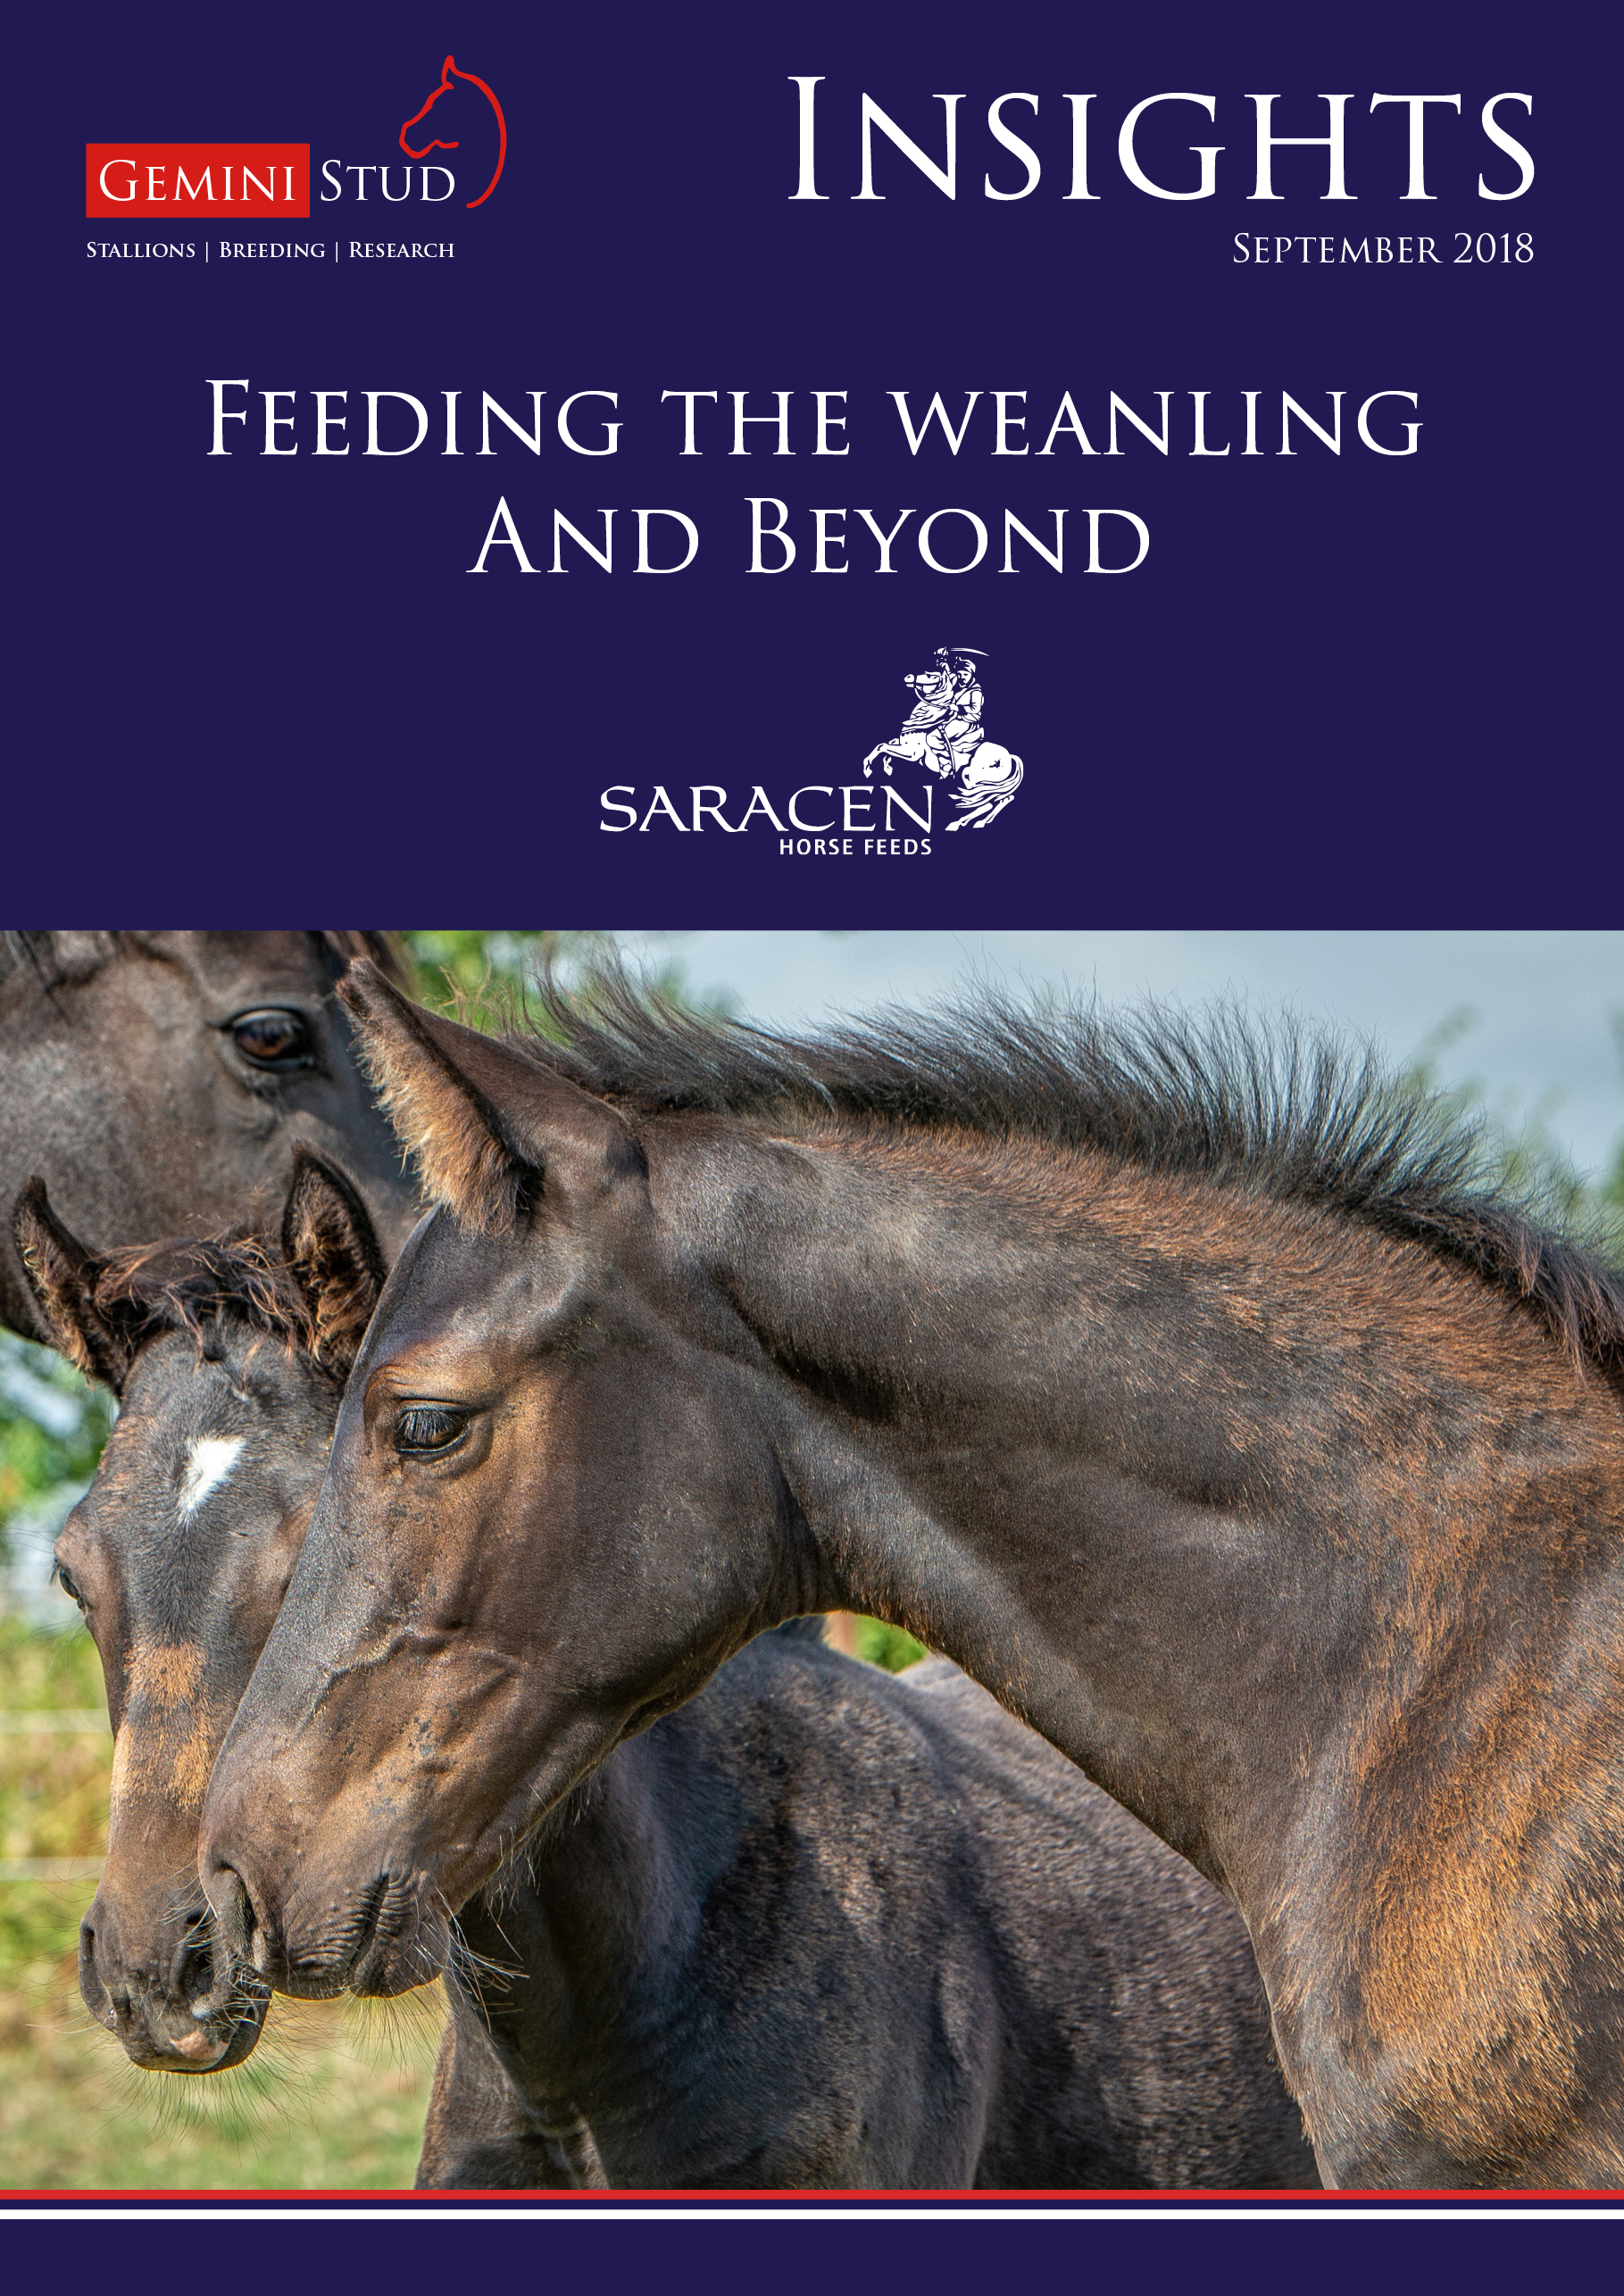 Wildfire Gemini Stud Insight Newsletter Saracen's Horse Feed Weanlings.jpg